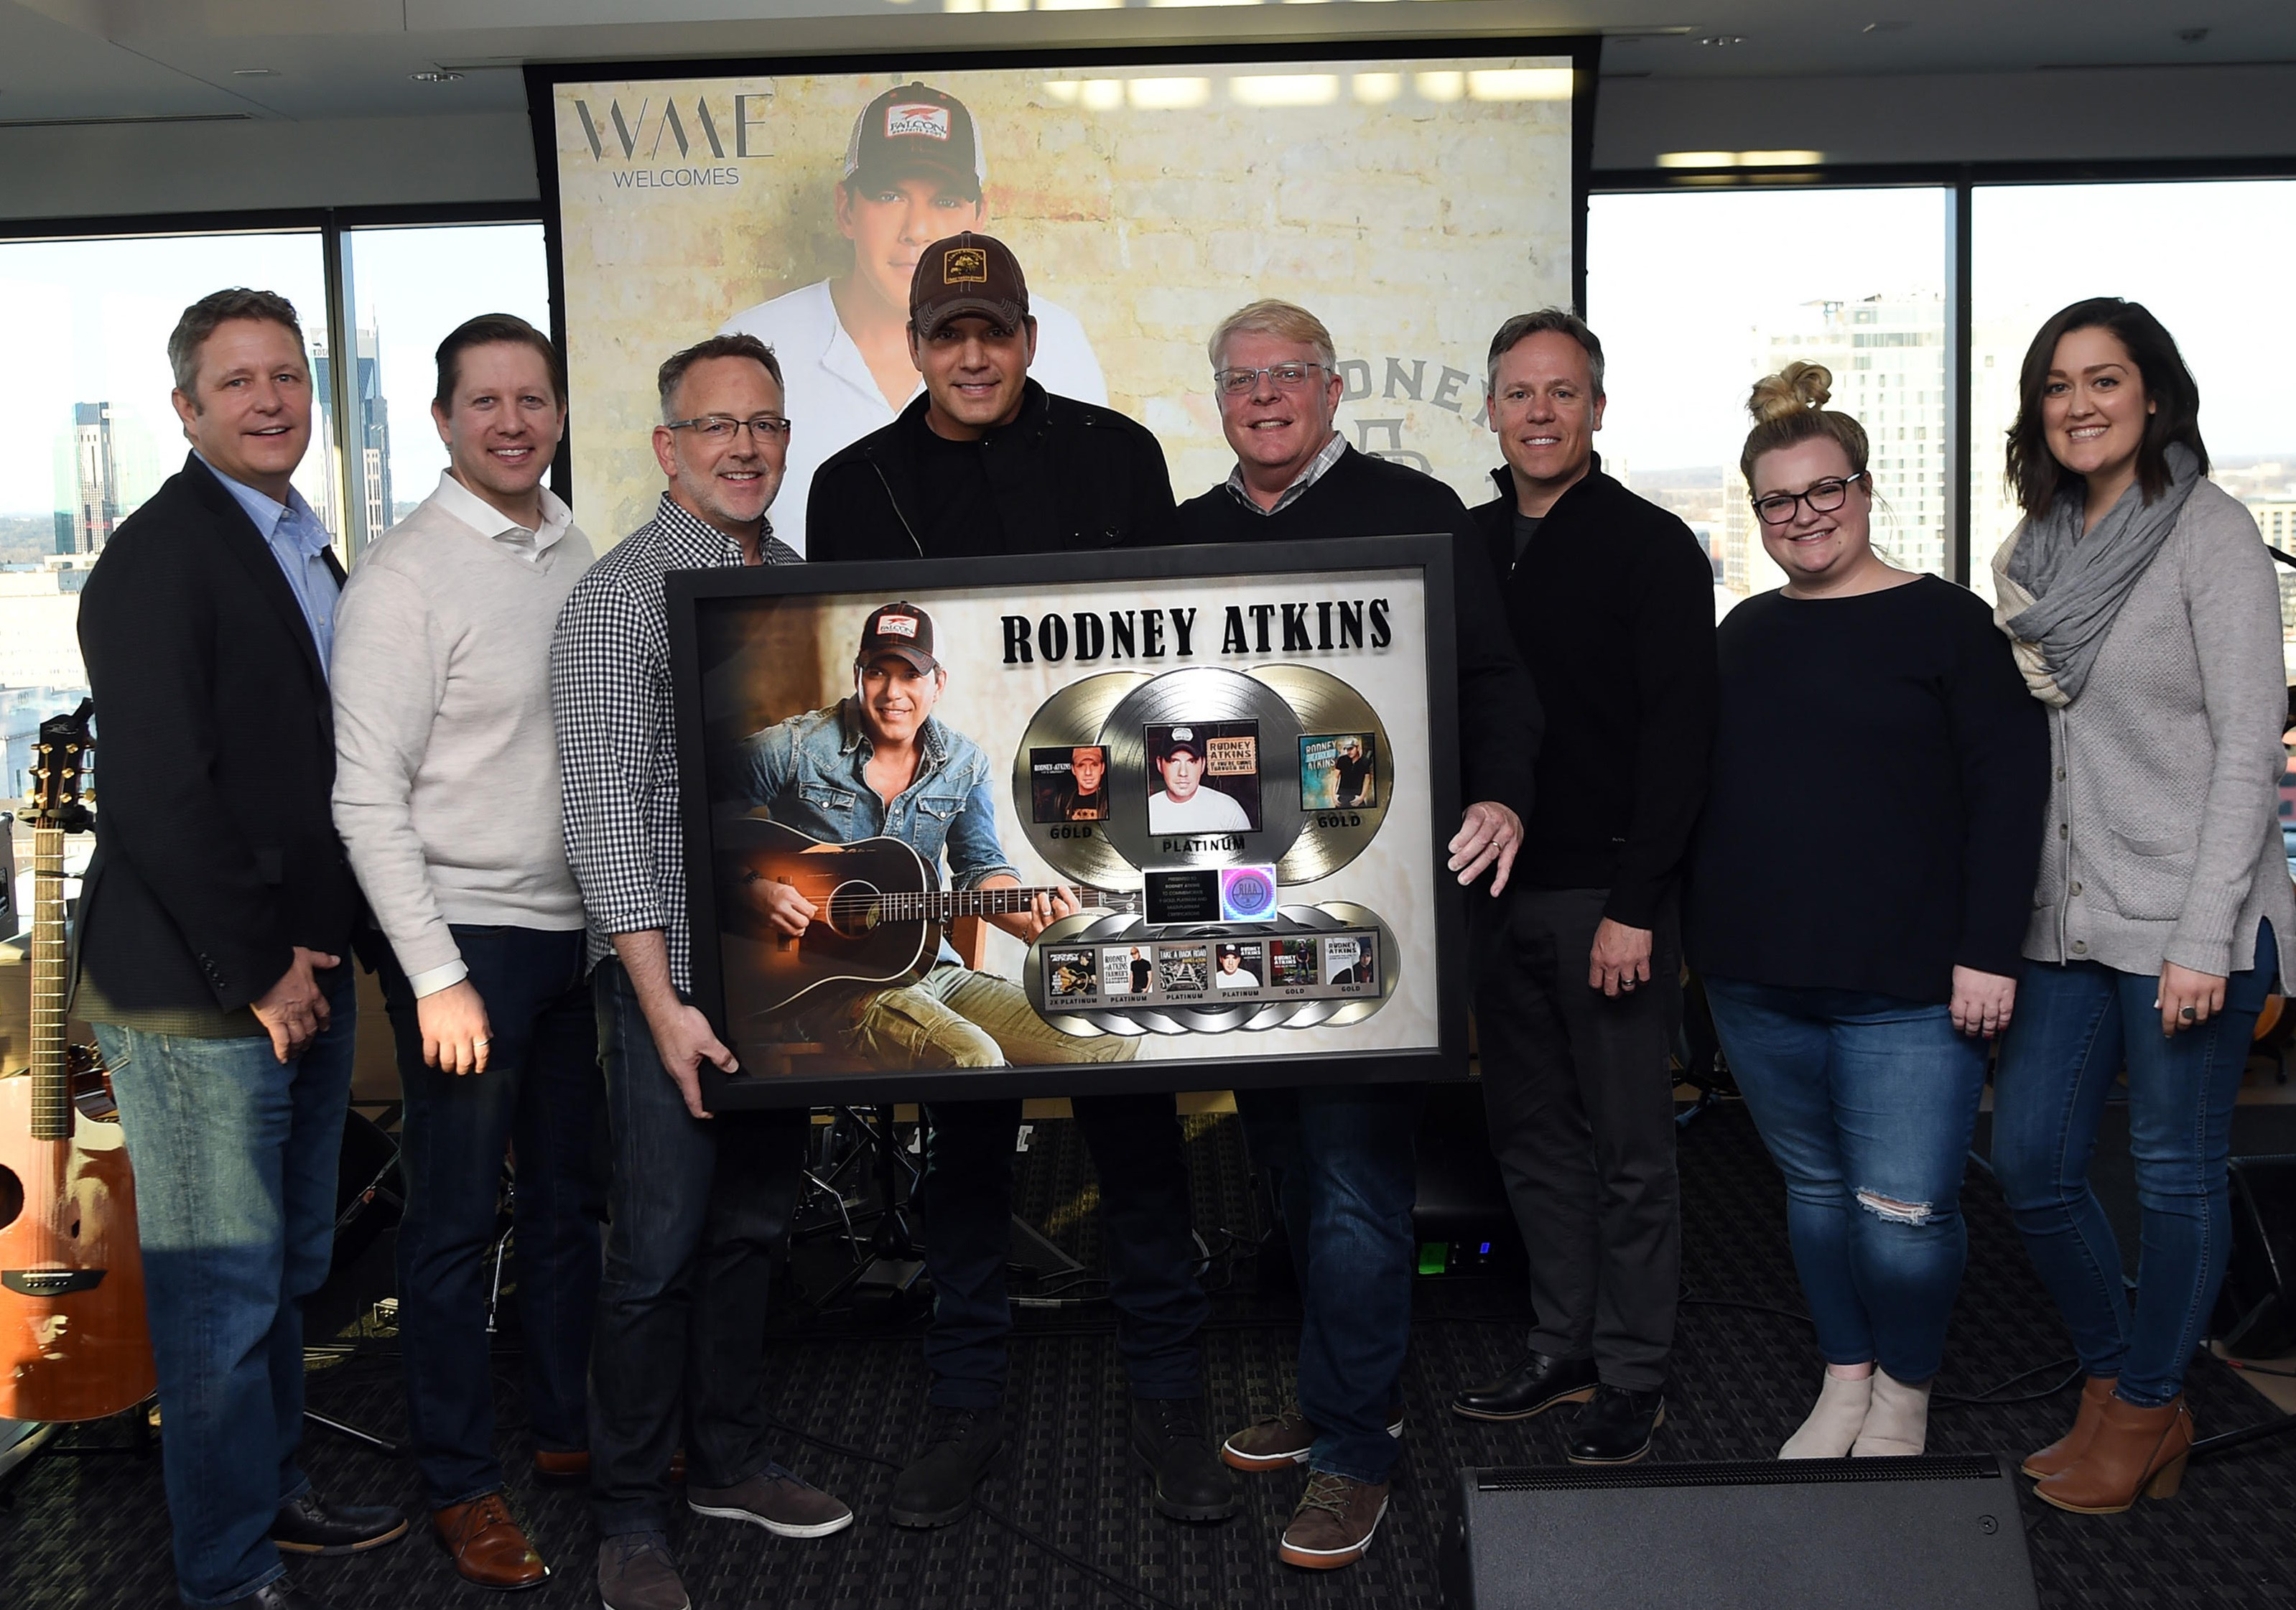 Rodney Atkins platinum plaque presentation